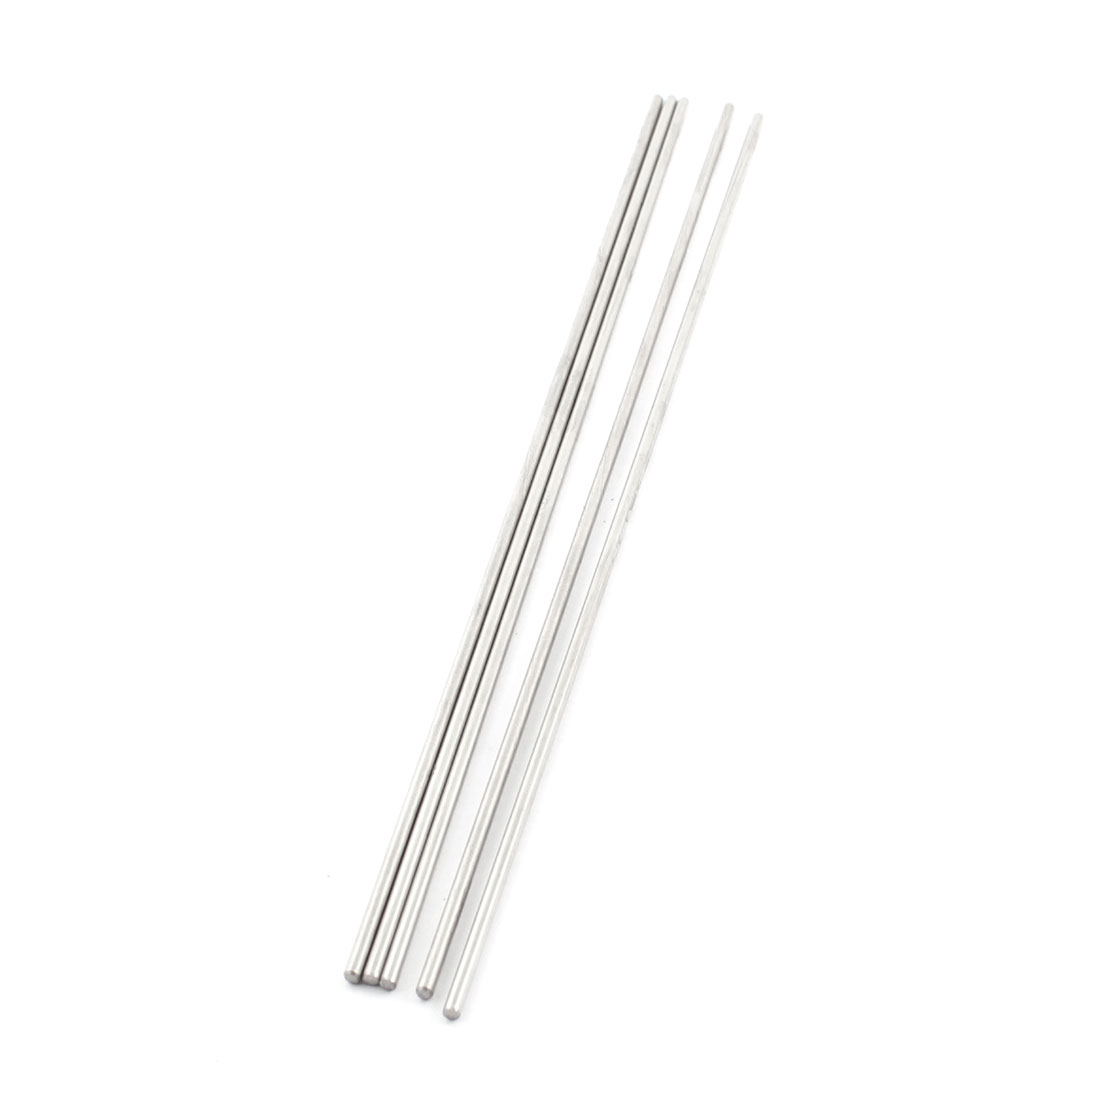 5Pcs 2mm Dia 180mm Length Stainless Steel Round Rod Shaft for RC Toy Car